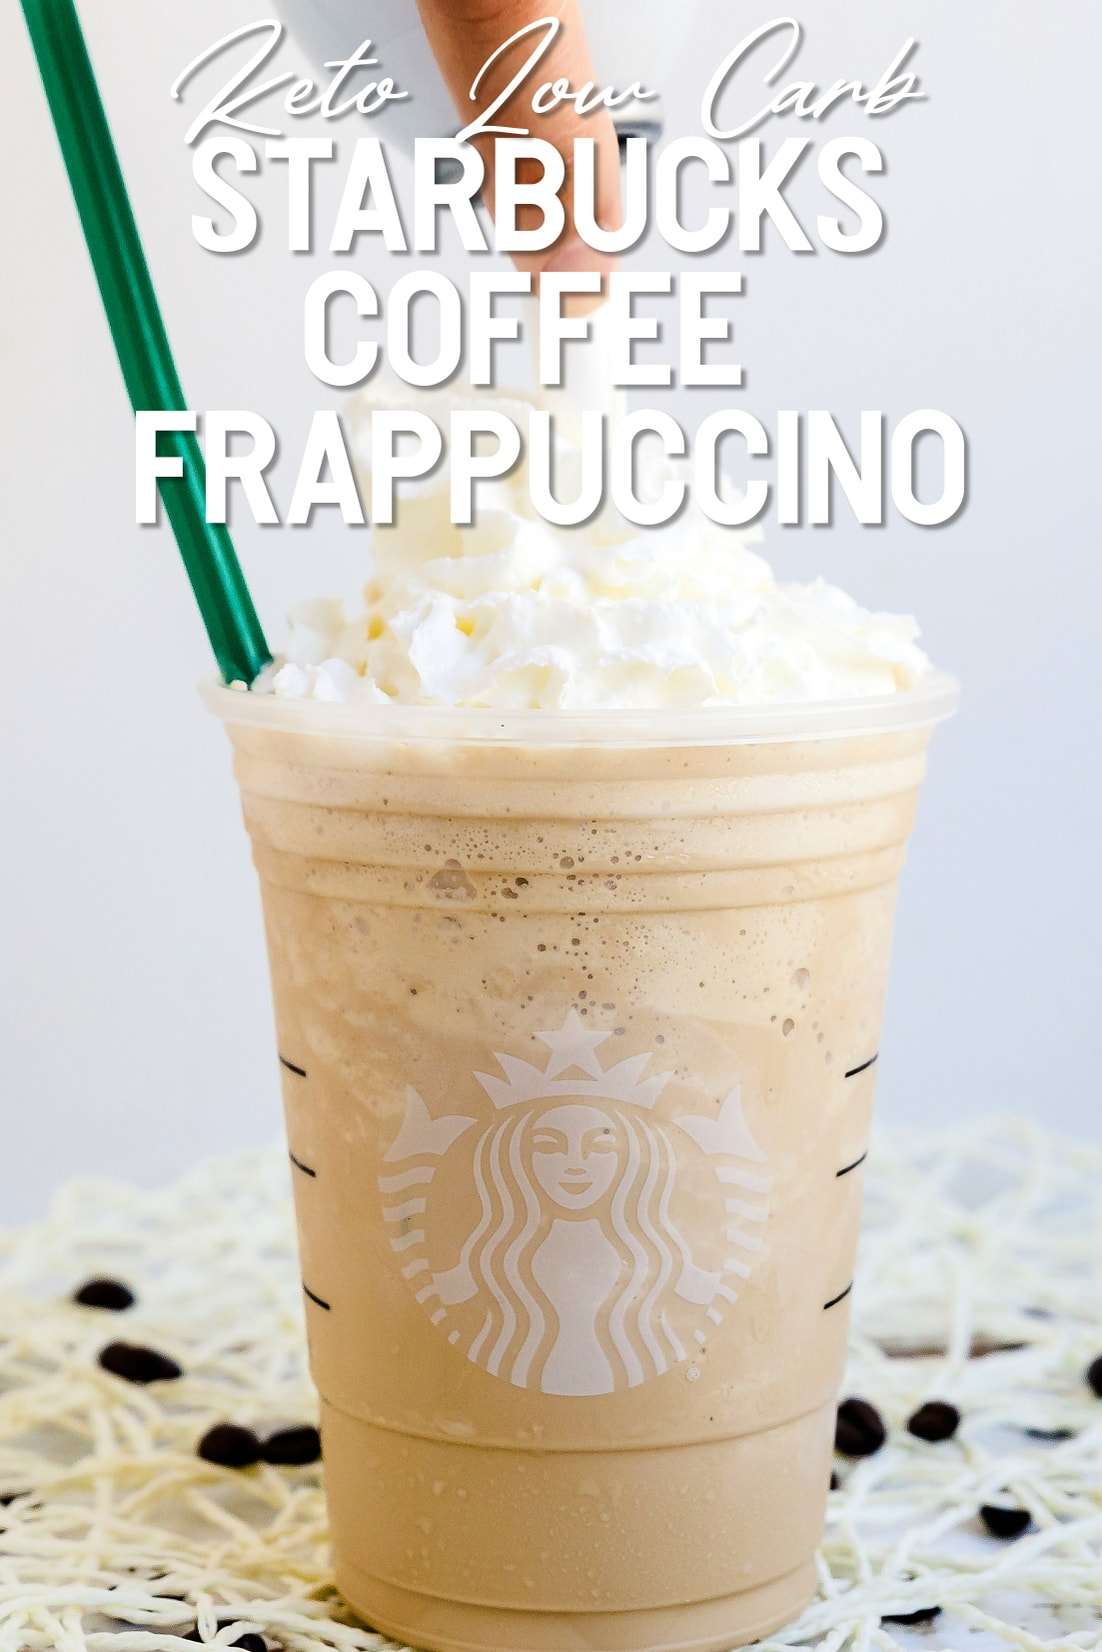 Keto Starbucks Copycat Coffee Frappuccino in a cup with straw